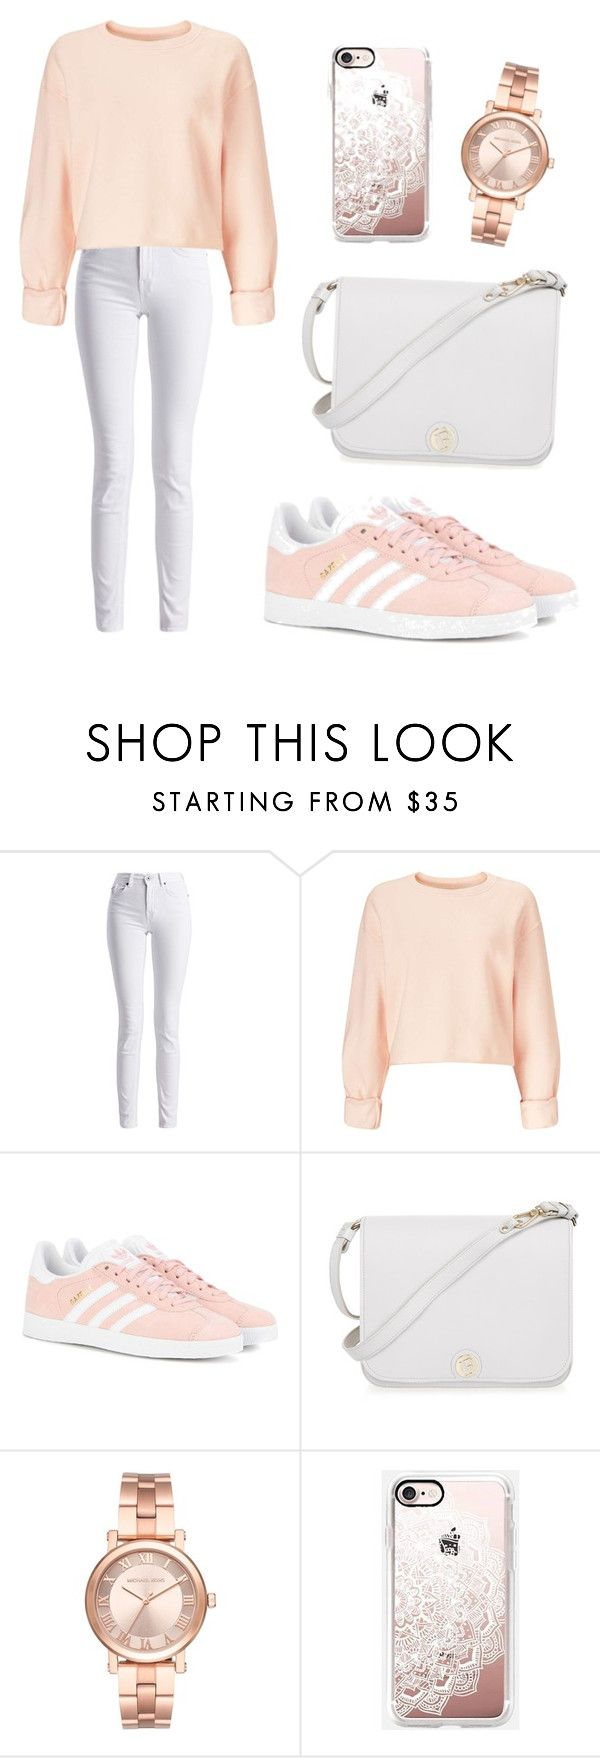 Adidas Women Shoes - Untitled #6 by angelaabrahamyan ❤ liked on Polyvore featuring Barbour International, Miss Selfridge, adidas Originals, Furla, Michael Kors and Casetify - We reveal the news in sneakers for spring summer 2017